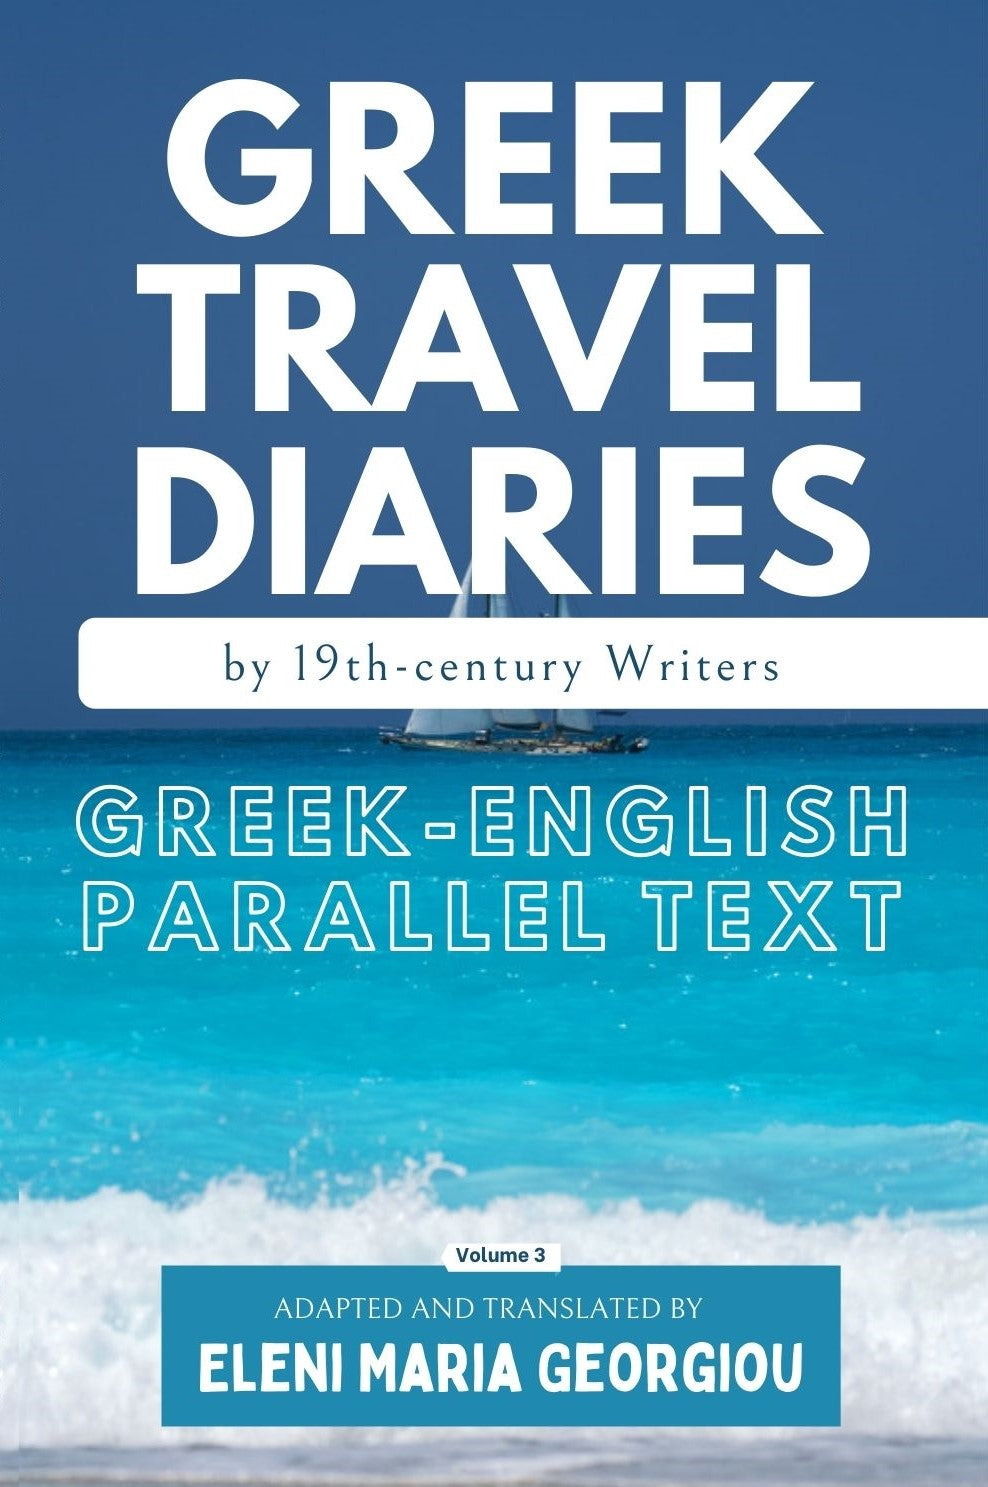 Greek Travel Diaries by 19th-century Writers: Greek-English Parallel Text - Volume 3